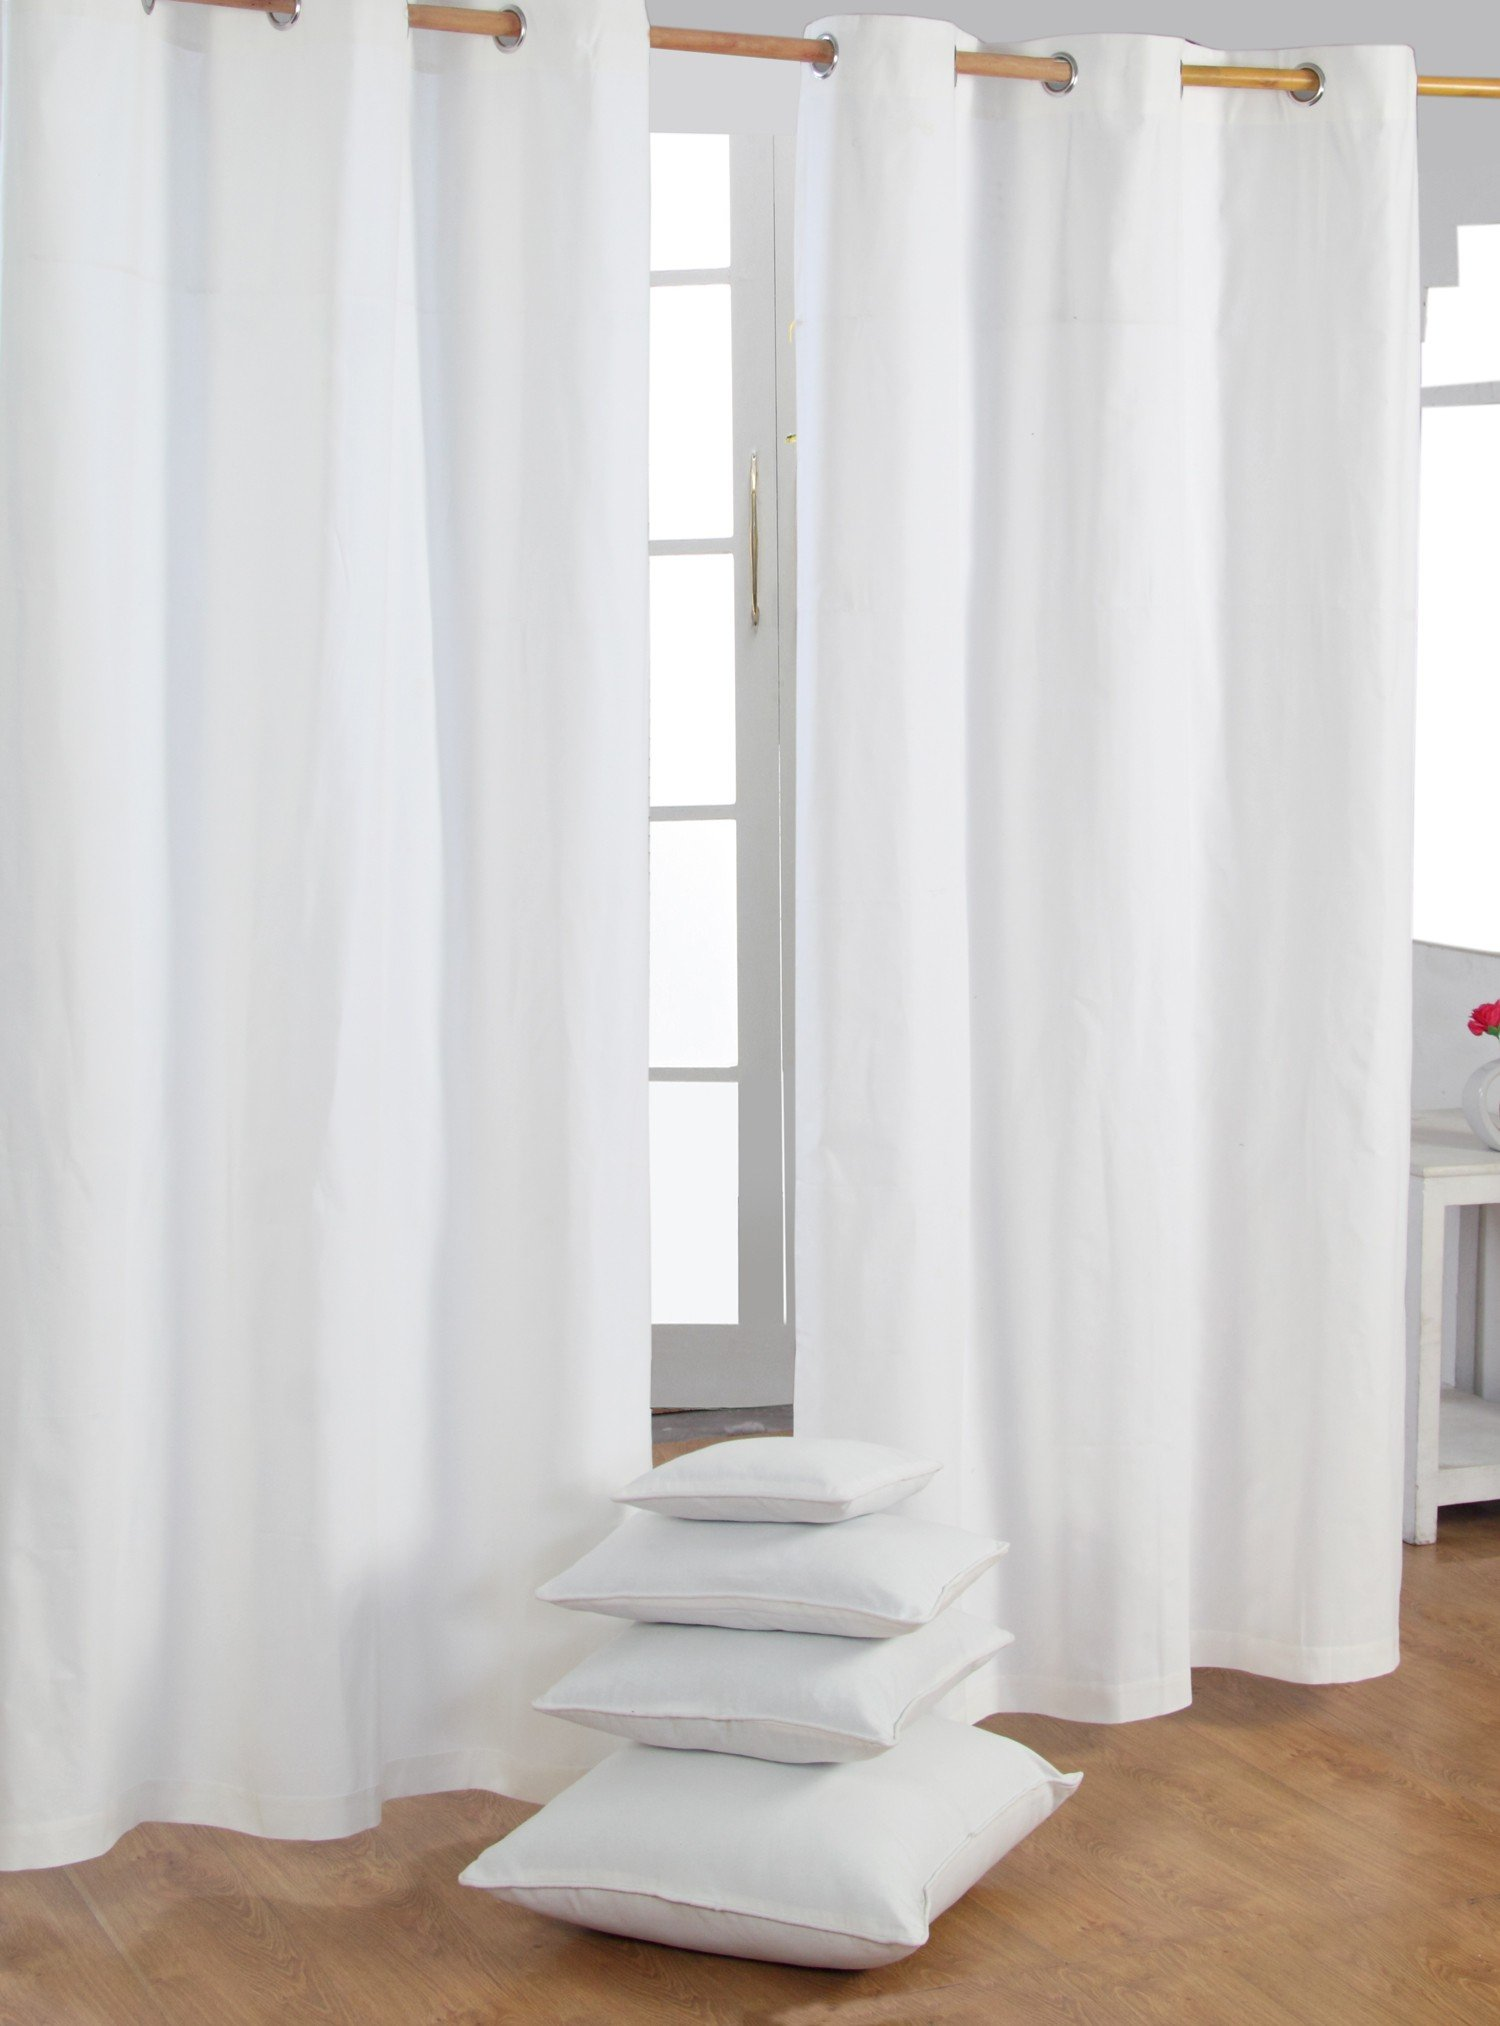 Homescapes White Eyelet Curtain Pair 137cm 54 Wide X 228cm 90